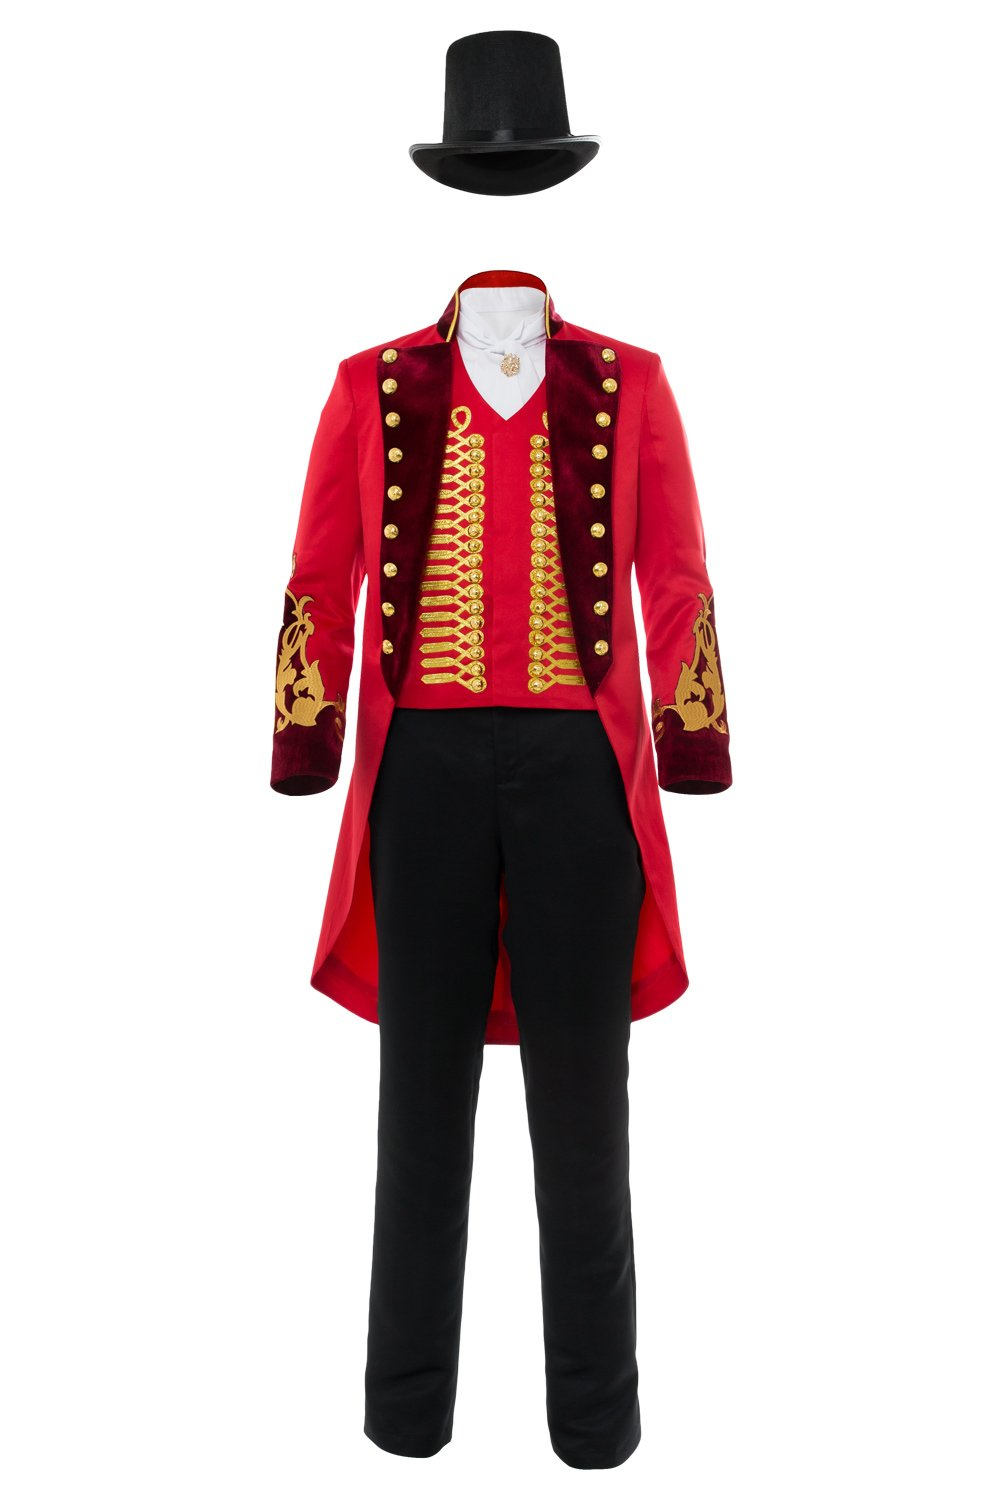 Adult Performance Uniform Showman Party Suit Circus Red Outfit Cosplay Costume (Female: X-Small, Red)